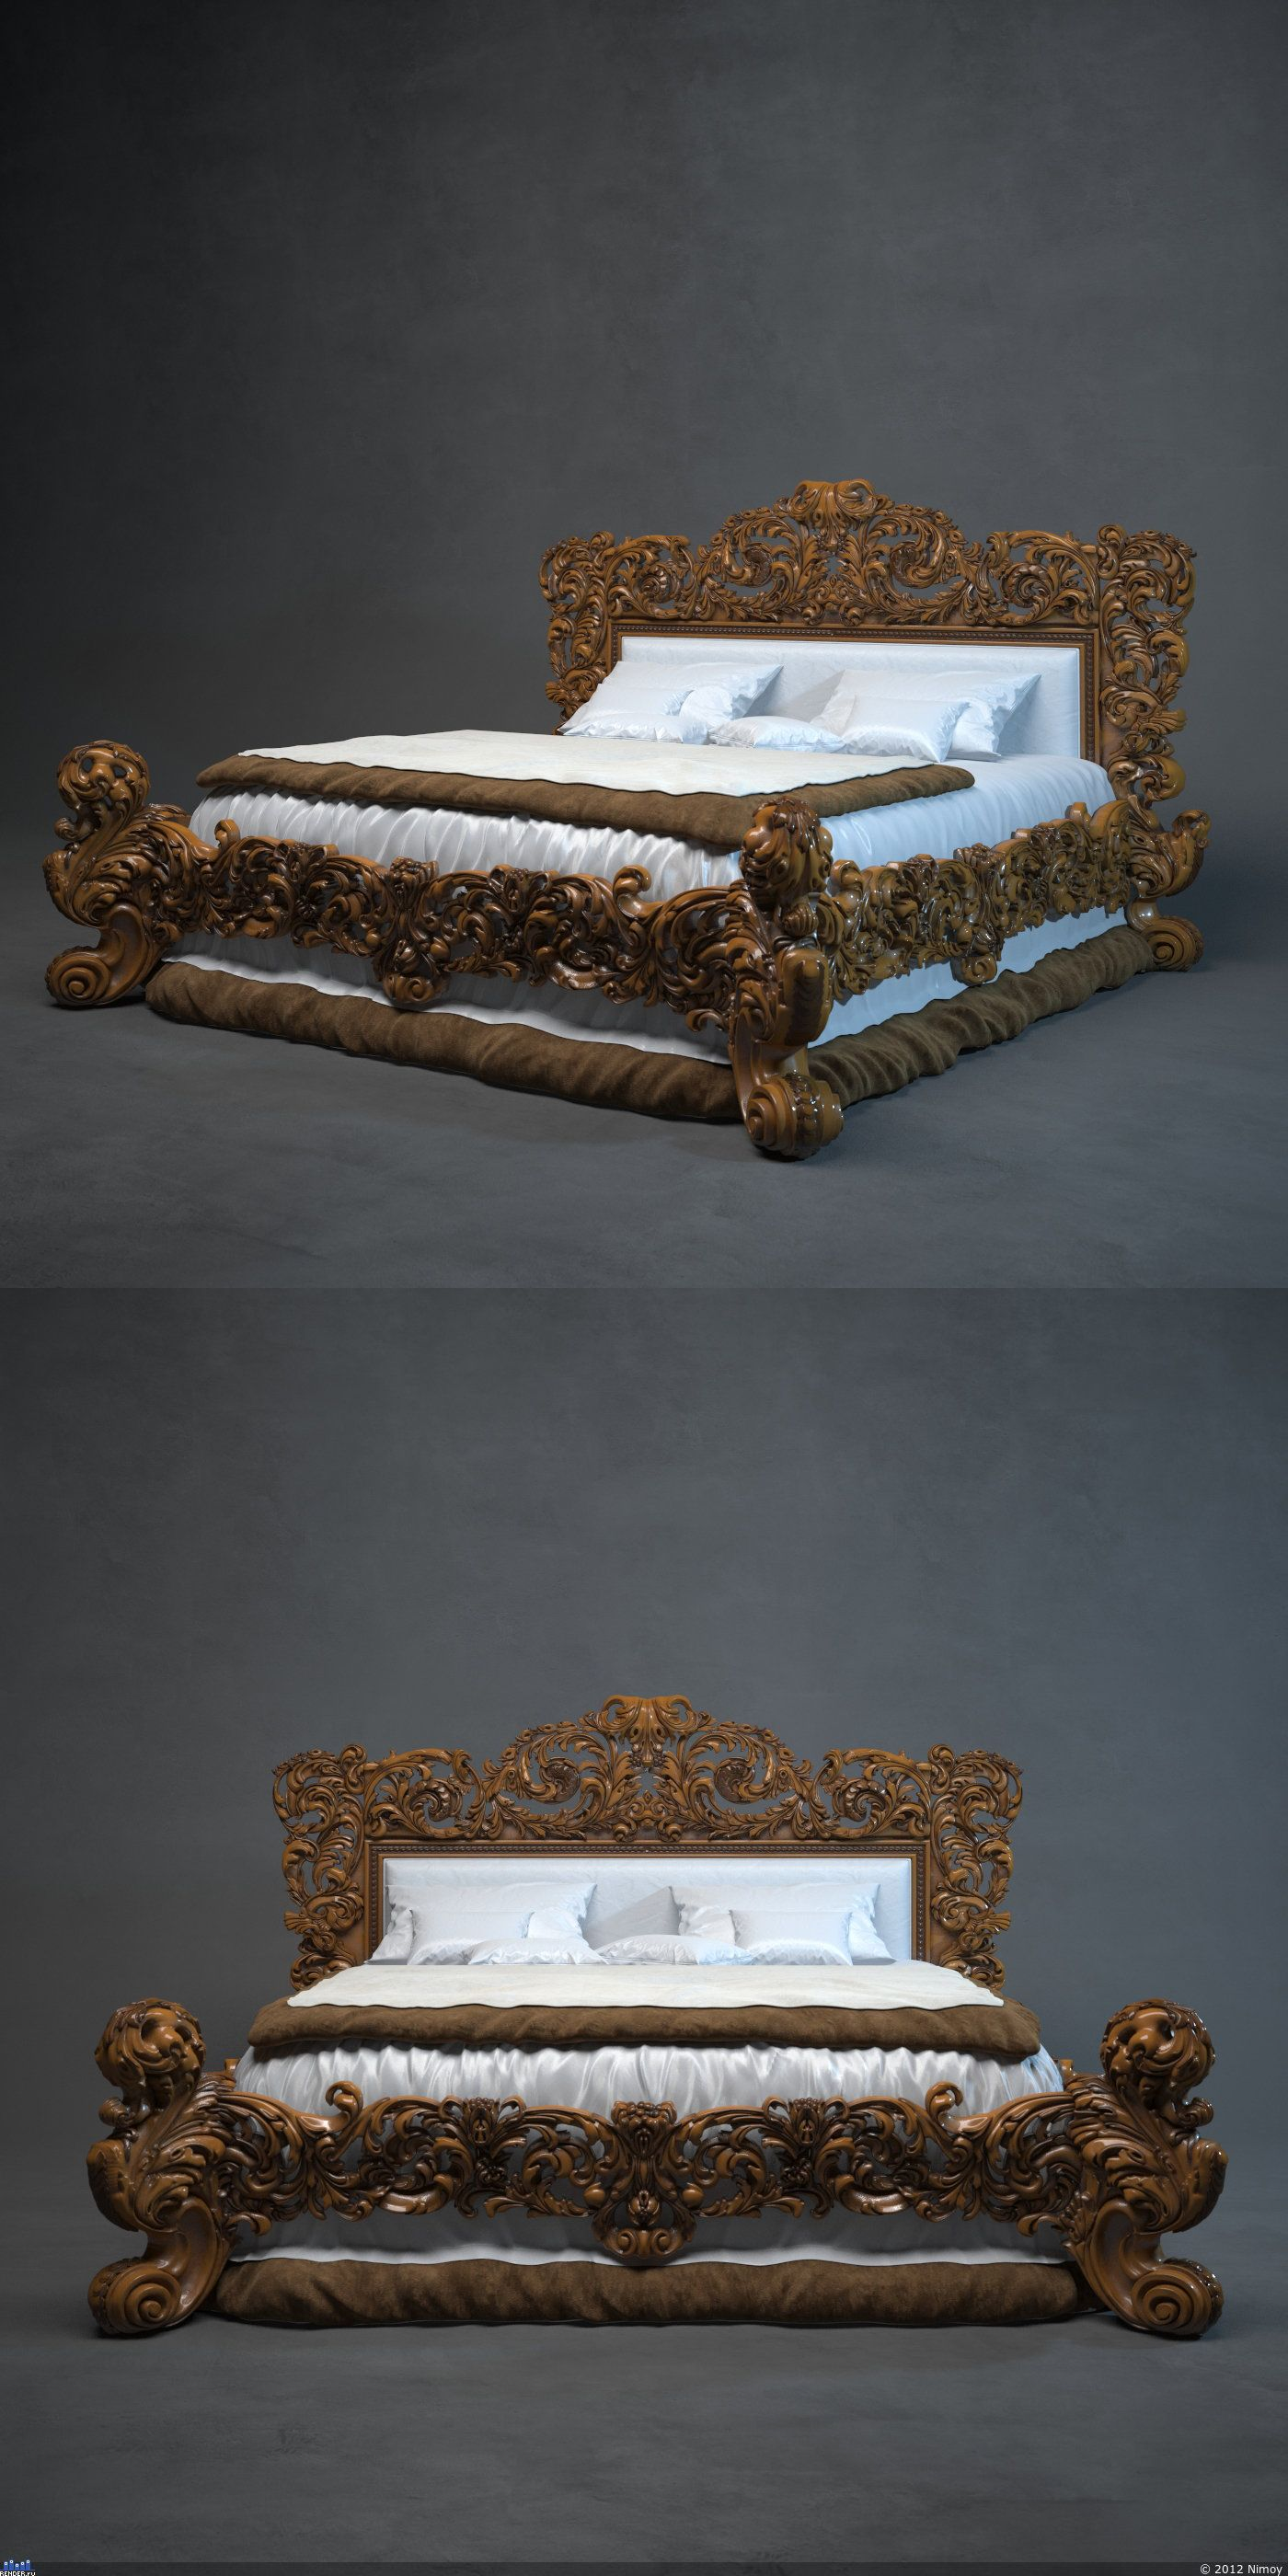 My akar | Royal furniture | Pinterest | Camas, Madera y Muebles únicos